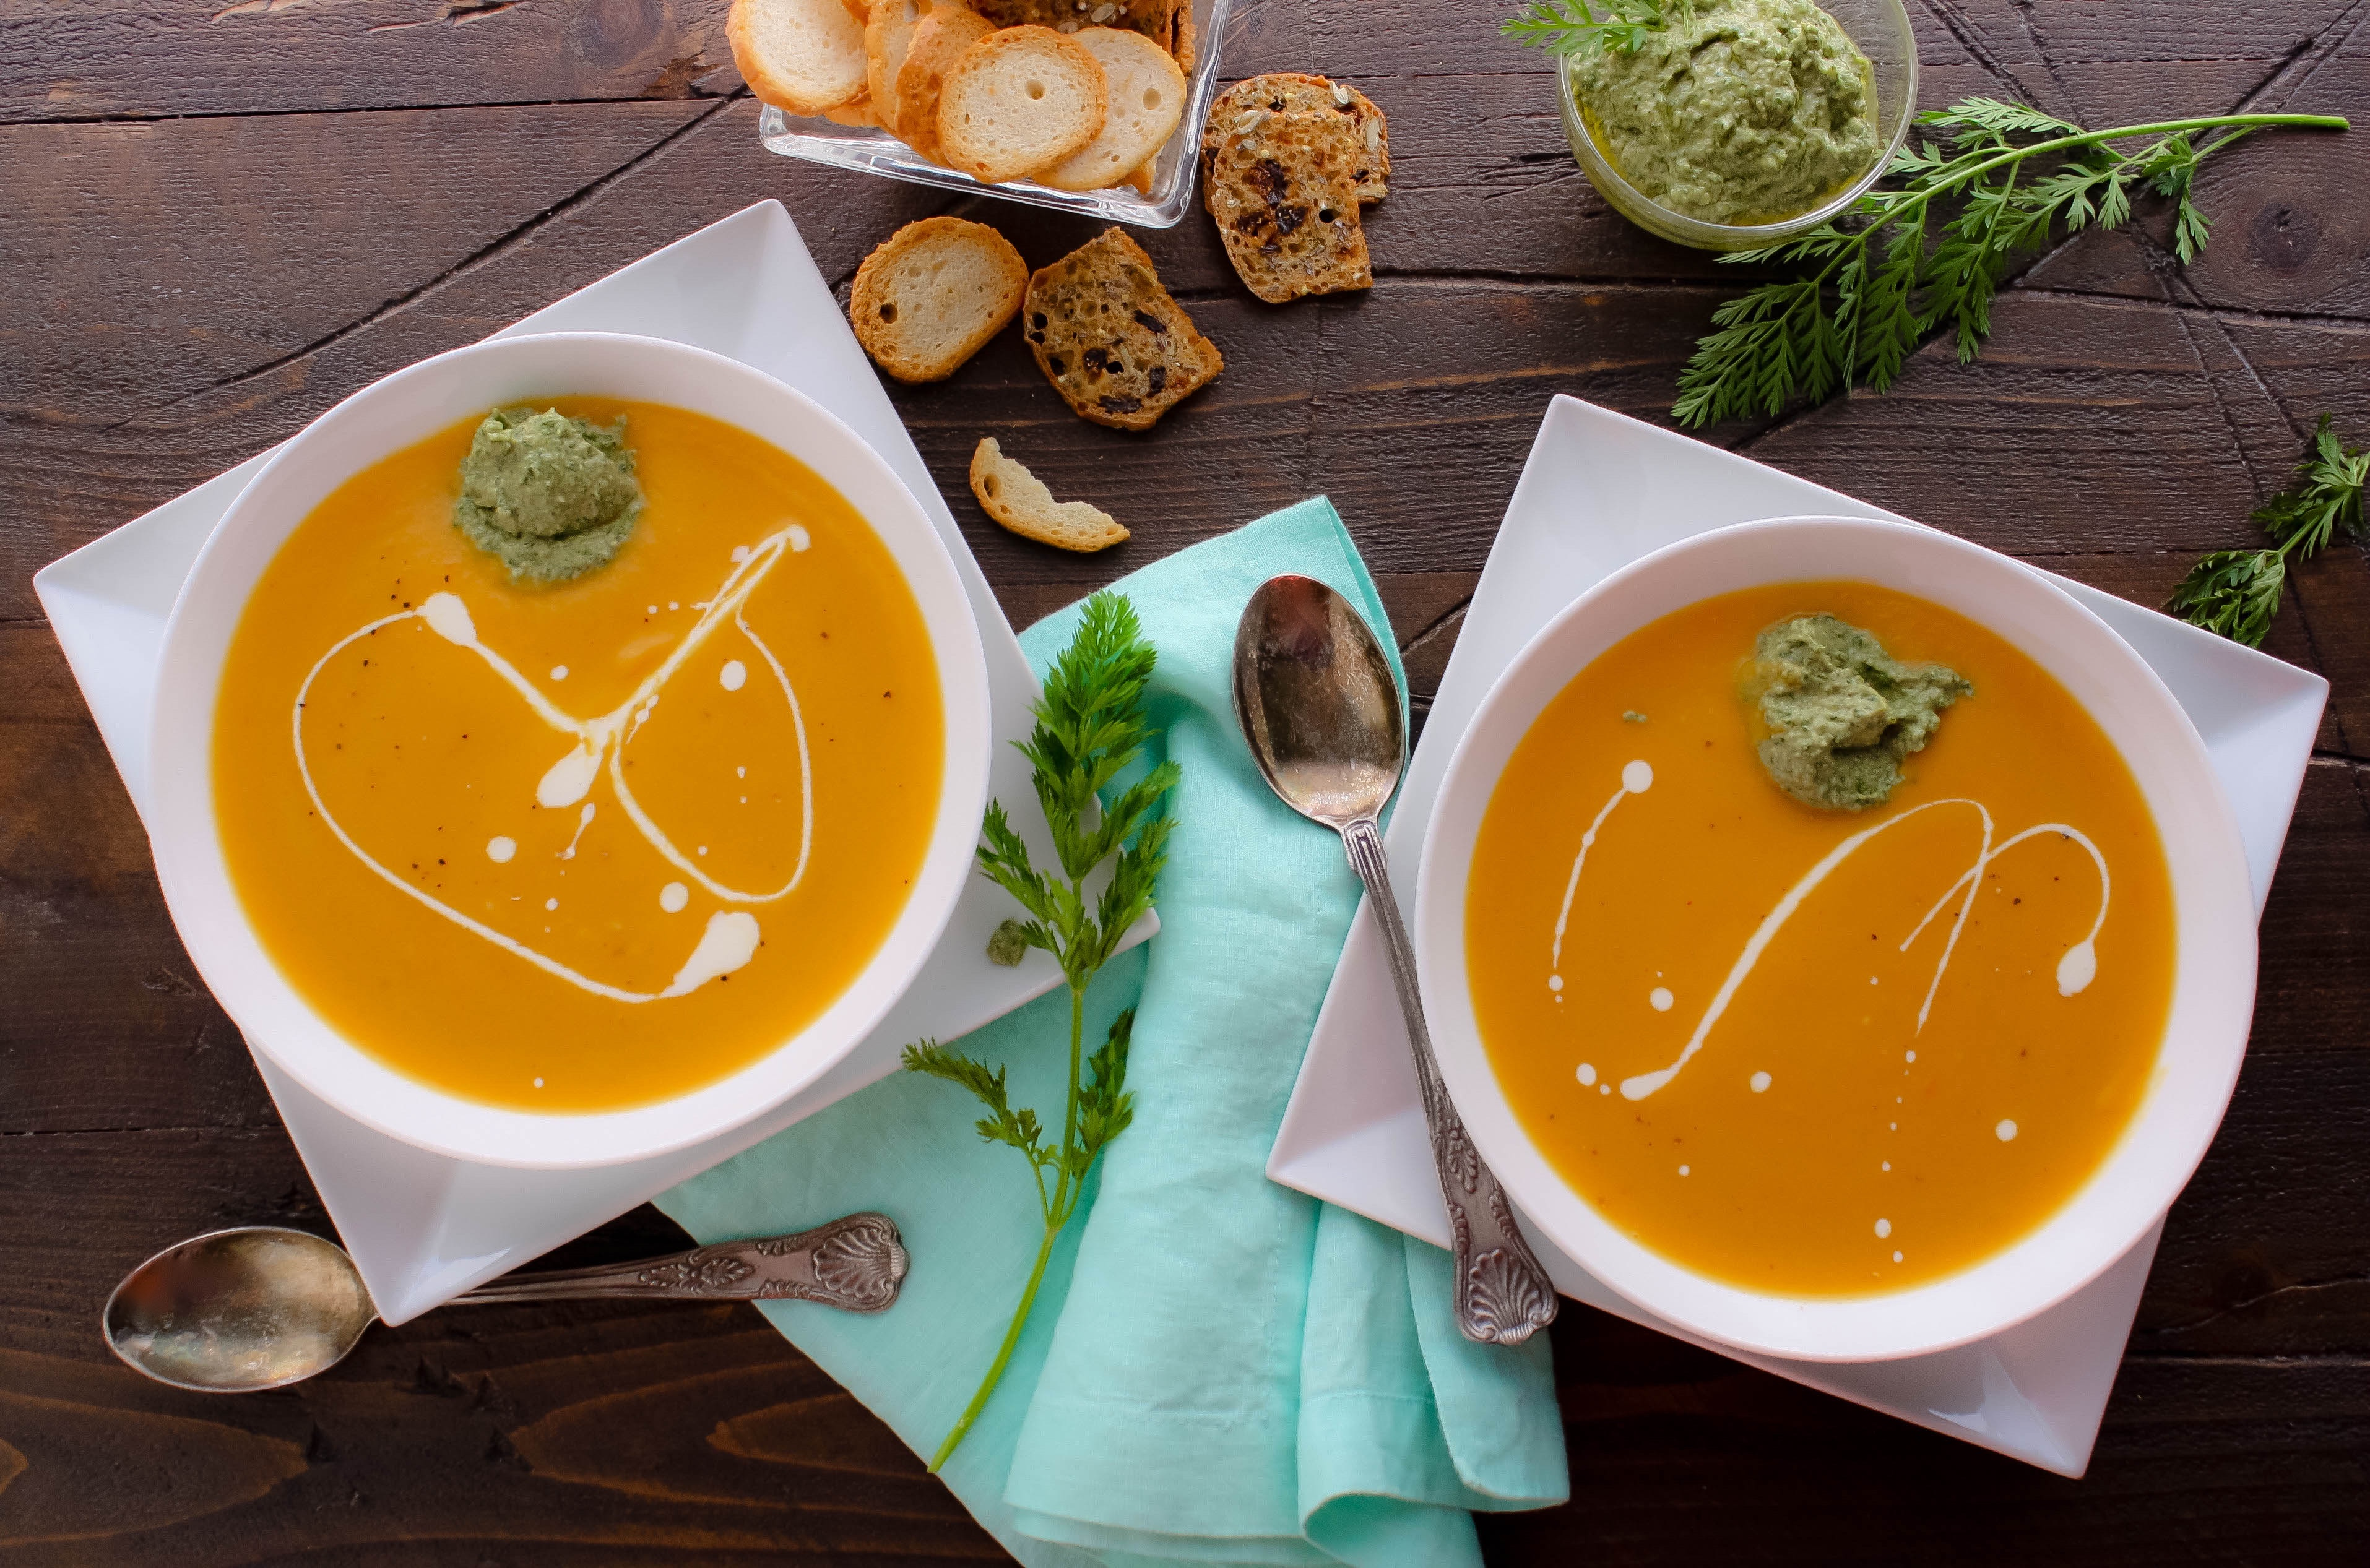 Roasted Carrot and Parsnip Soup with Carrot Greens Pesto is creamy and delicious. You'll love Roasted Carrot and Parsnip Soup with Carrot Greens Pesto for any night of the week.